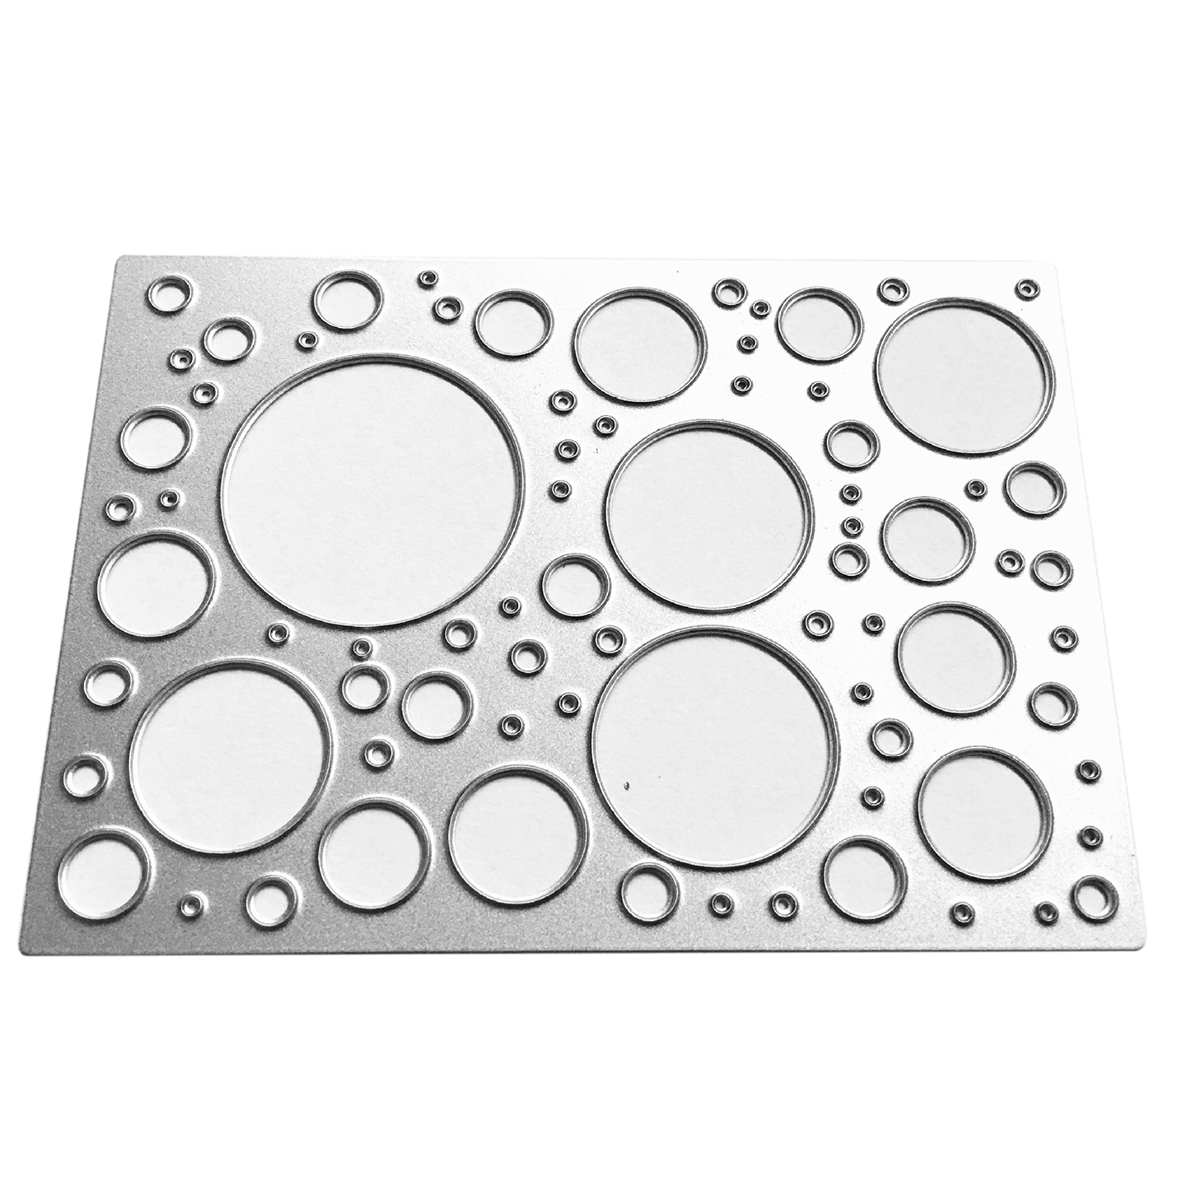 JX-LCLYL 1pc 71*99mm Hollow Circle Metal Cutting Die Stencils Scrapbooking Album Cards Template